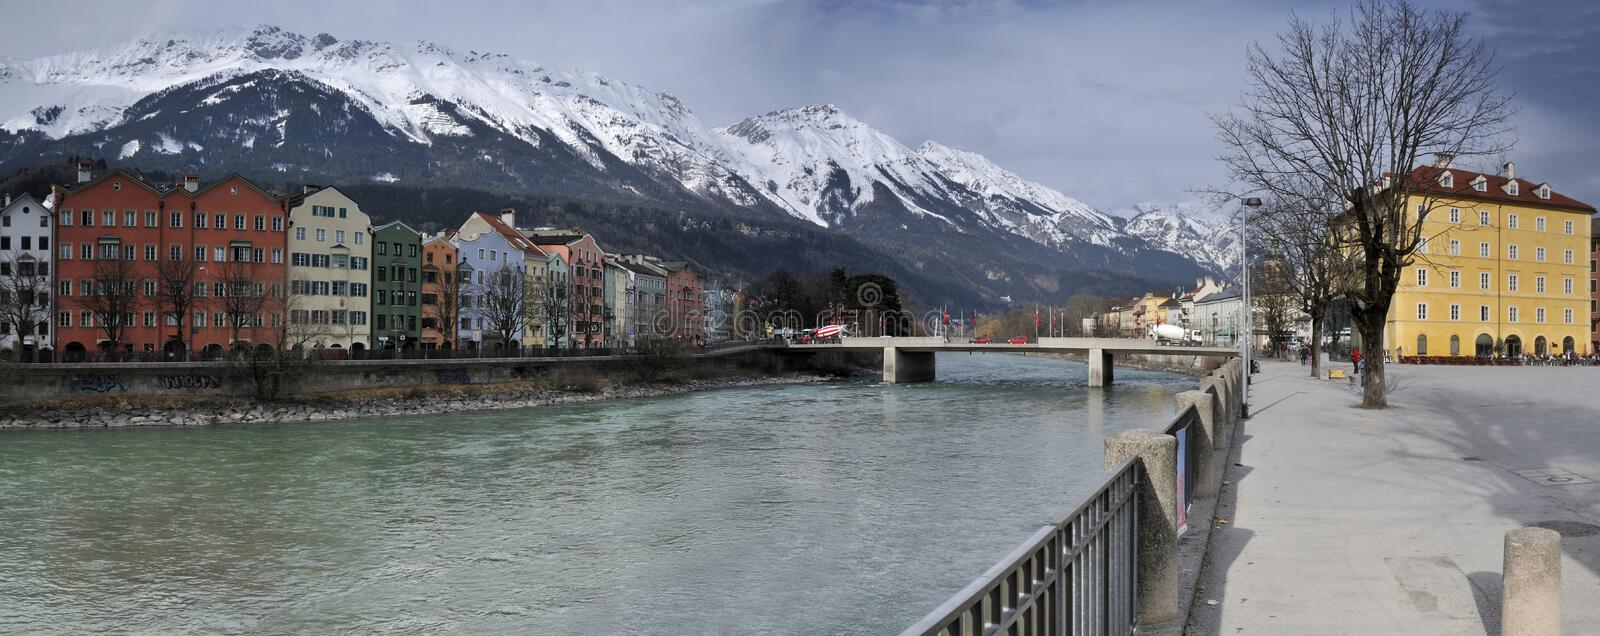 River Inn in Innsbruck